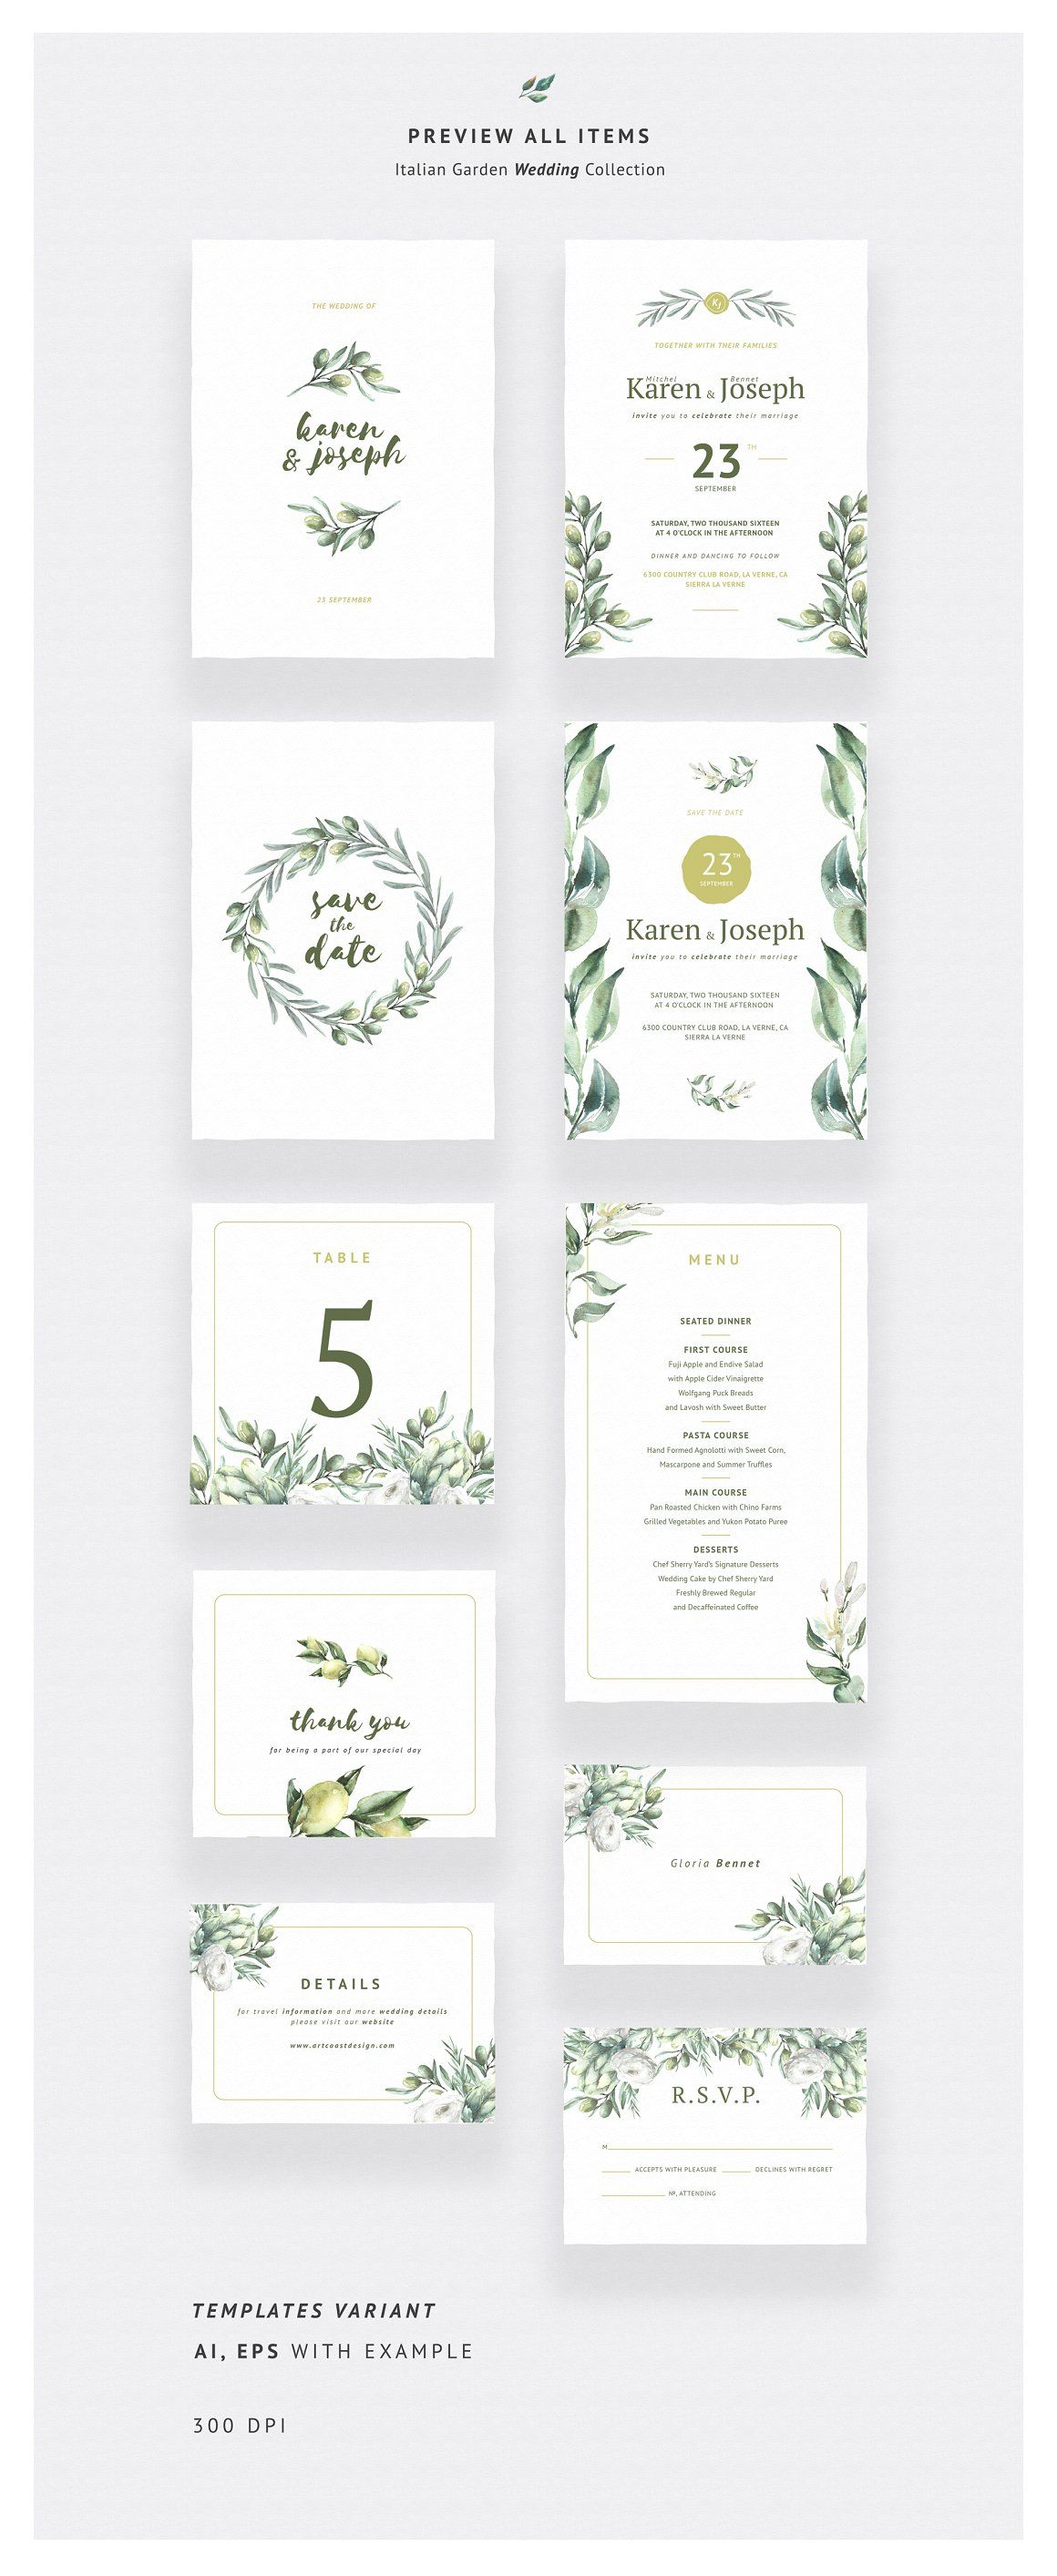 Italian Garden Wedding Collection Stationery Templates What Associations Will Italy Bring To You I For Exle Have Olives White Wine Lemons: Exquisite Tuscan Wedding Invitations At Websimilar.org